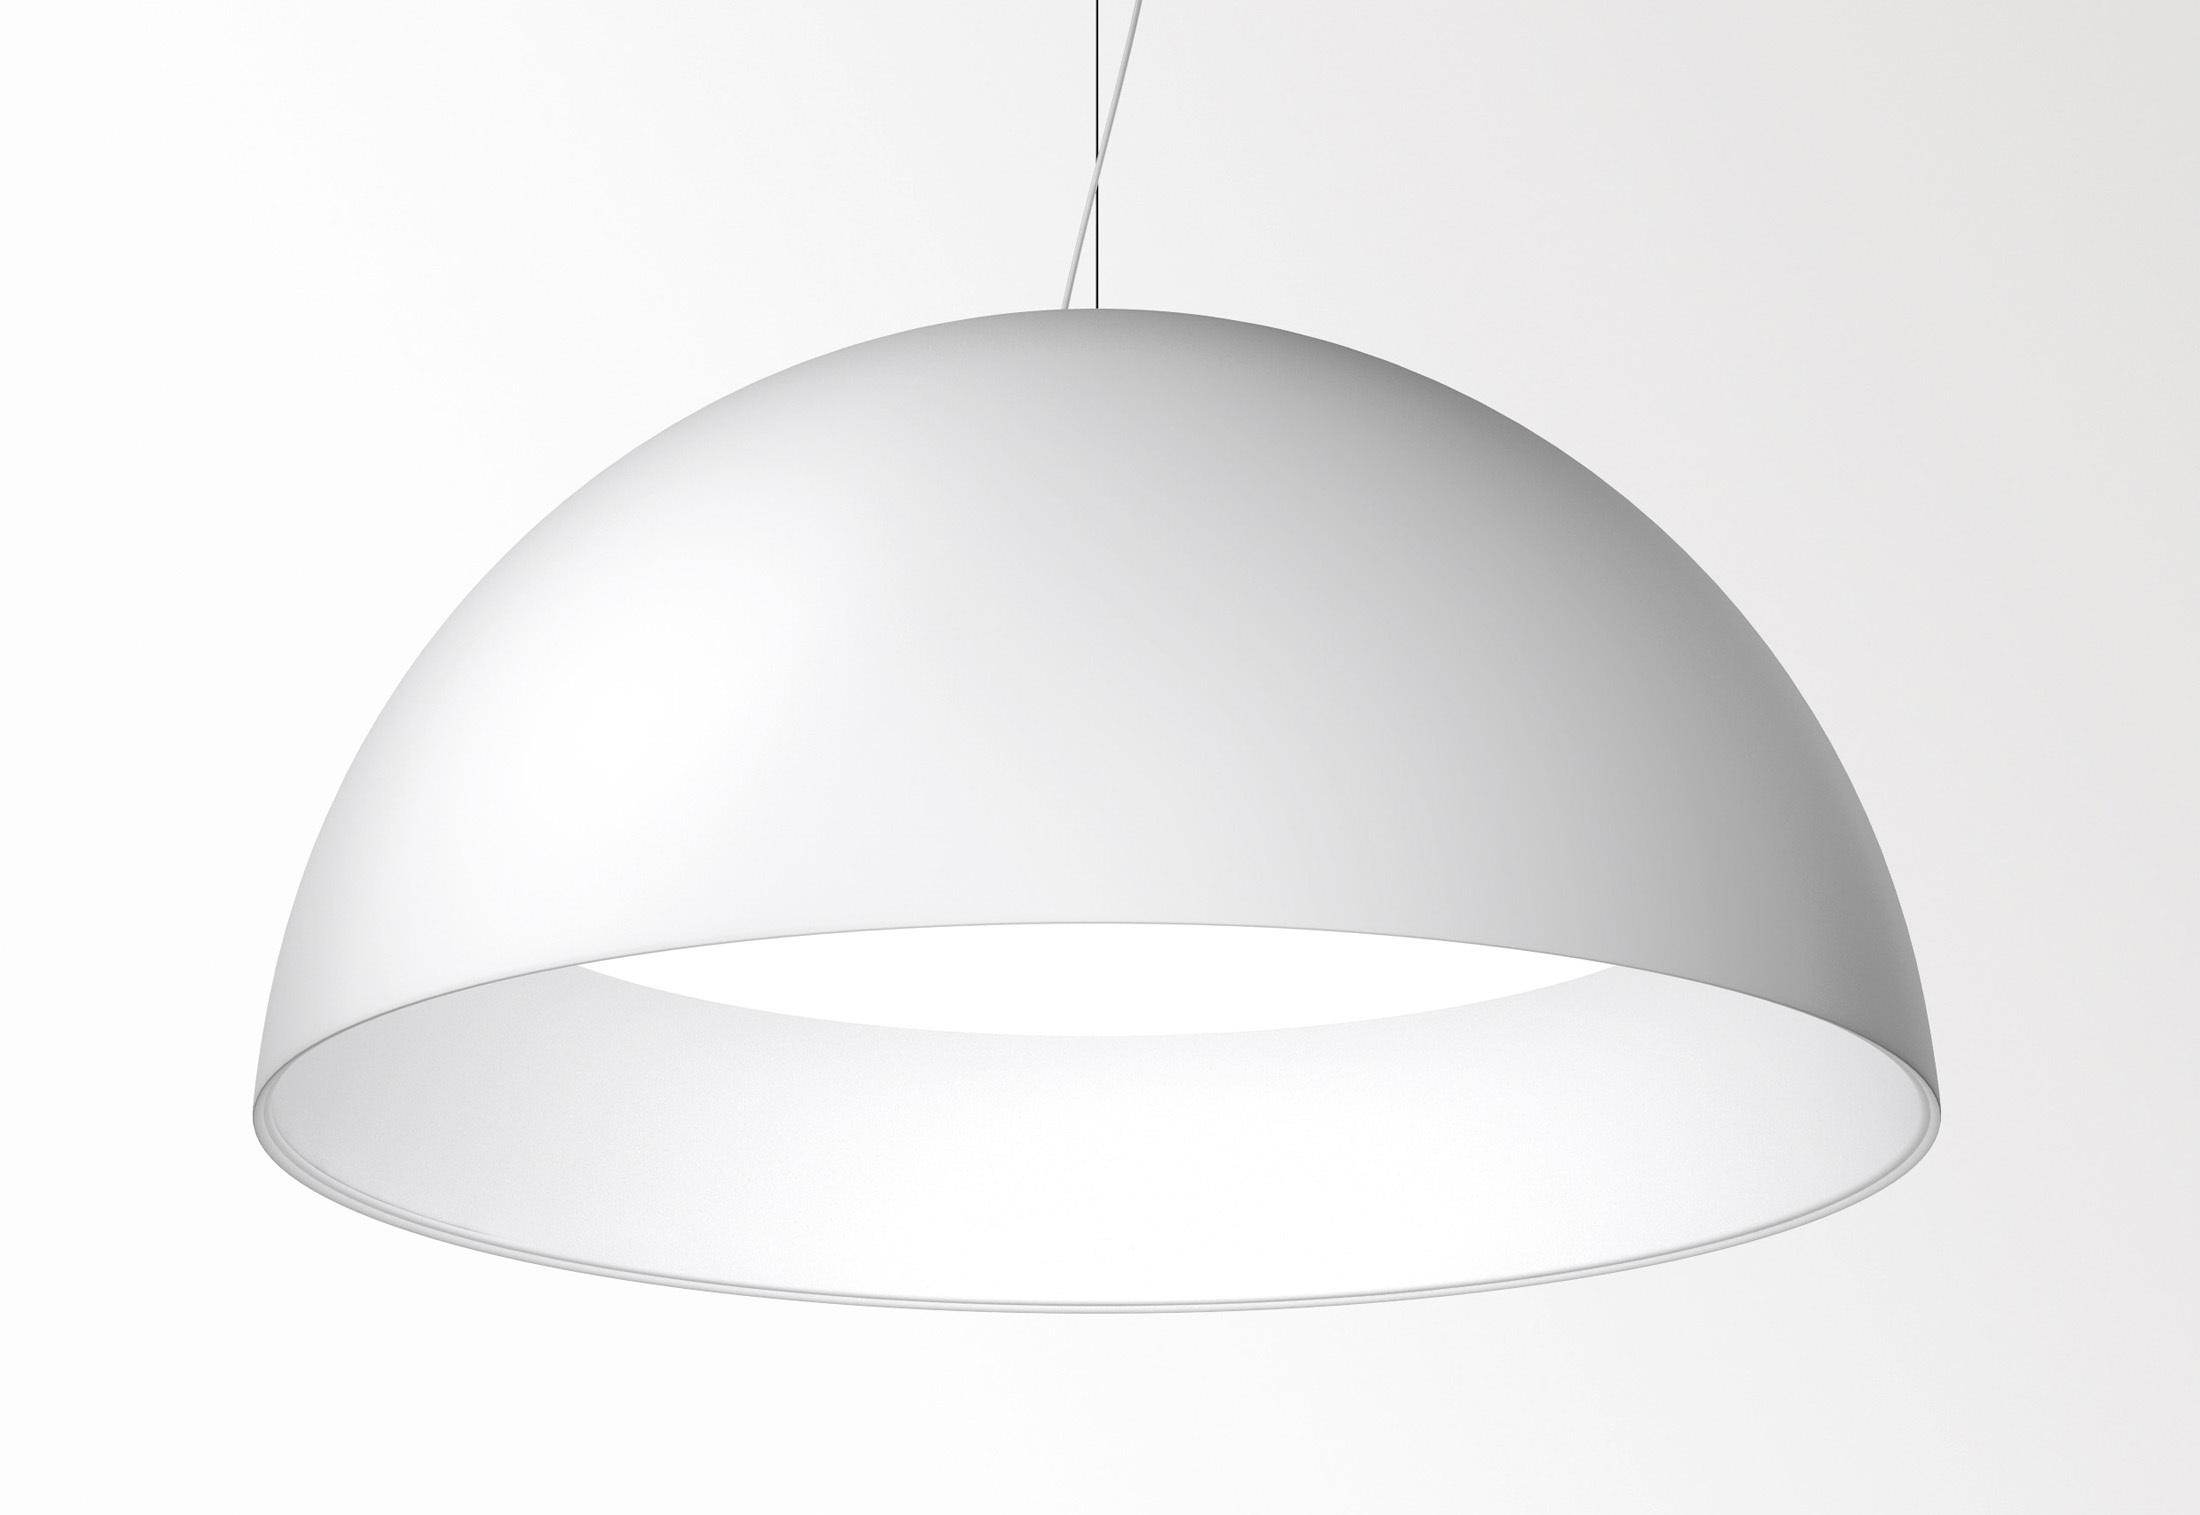 Superdome suspended luminaire by delta light stylepark for Suspente luminaire